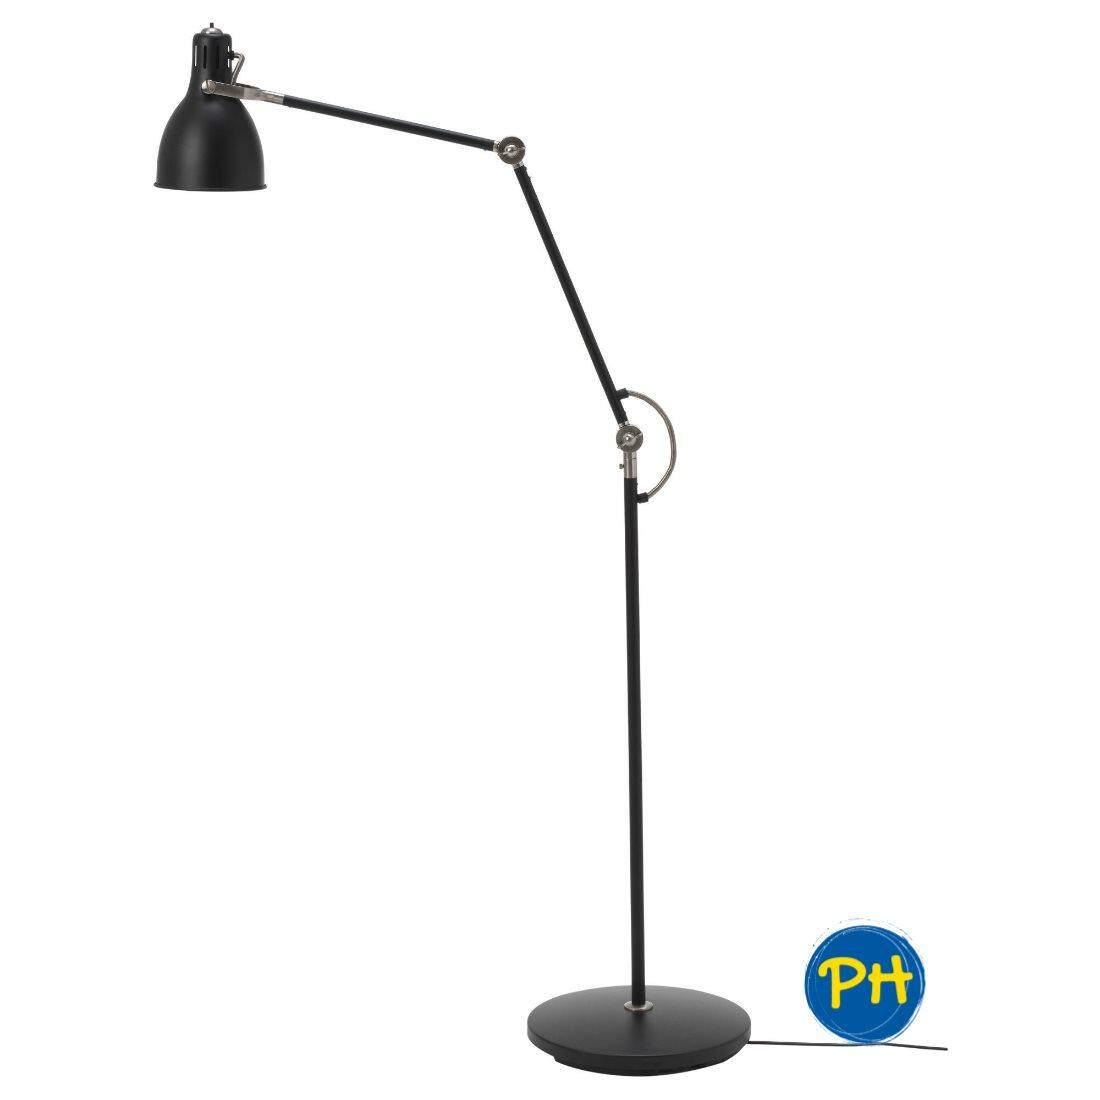 sports shoes 1548d 048a4 Ikea AROD 503.891.02 Floor / Reading Lamp (Black)